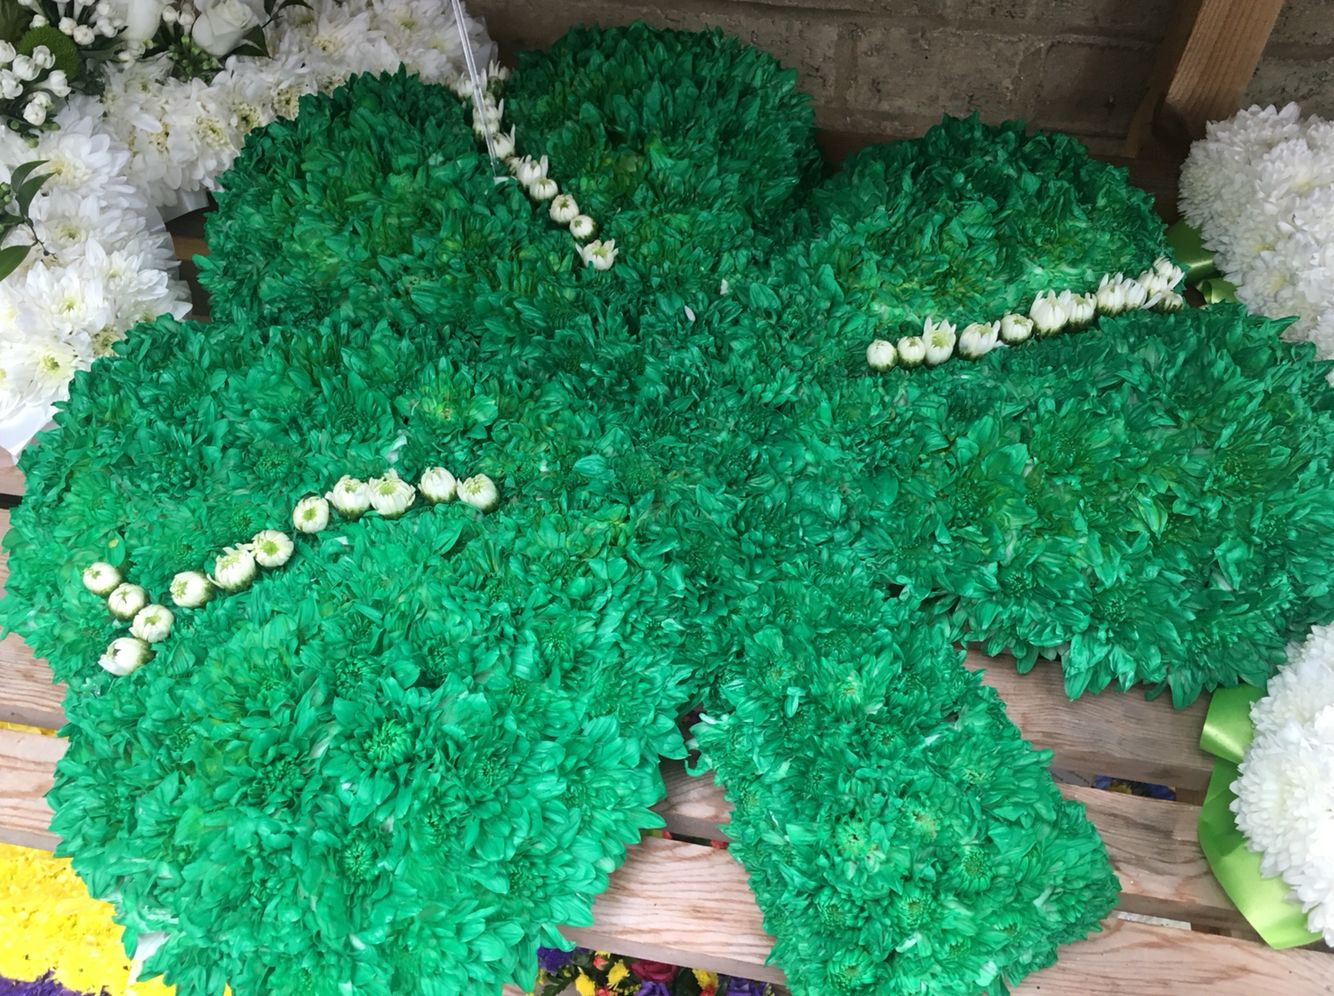 Shamrock funeral tribute bloomin chic funeral flowers pinterest shamrock funeral tribute izmirmasajfo